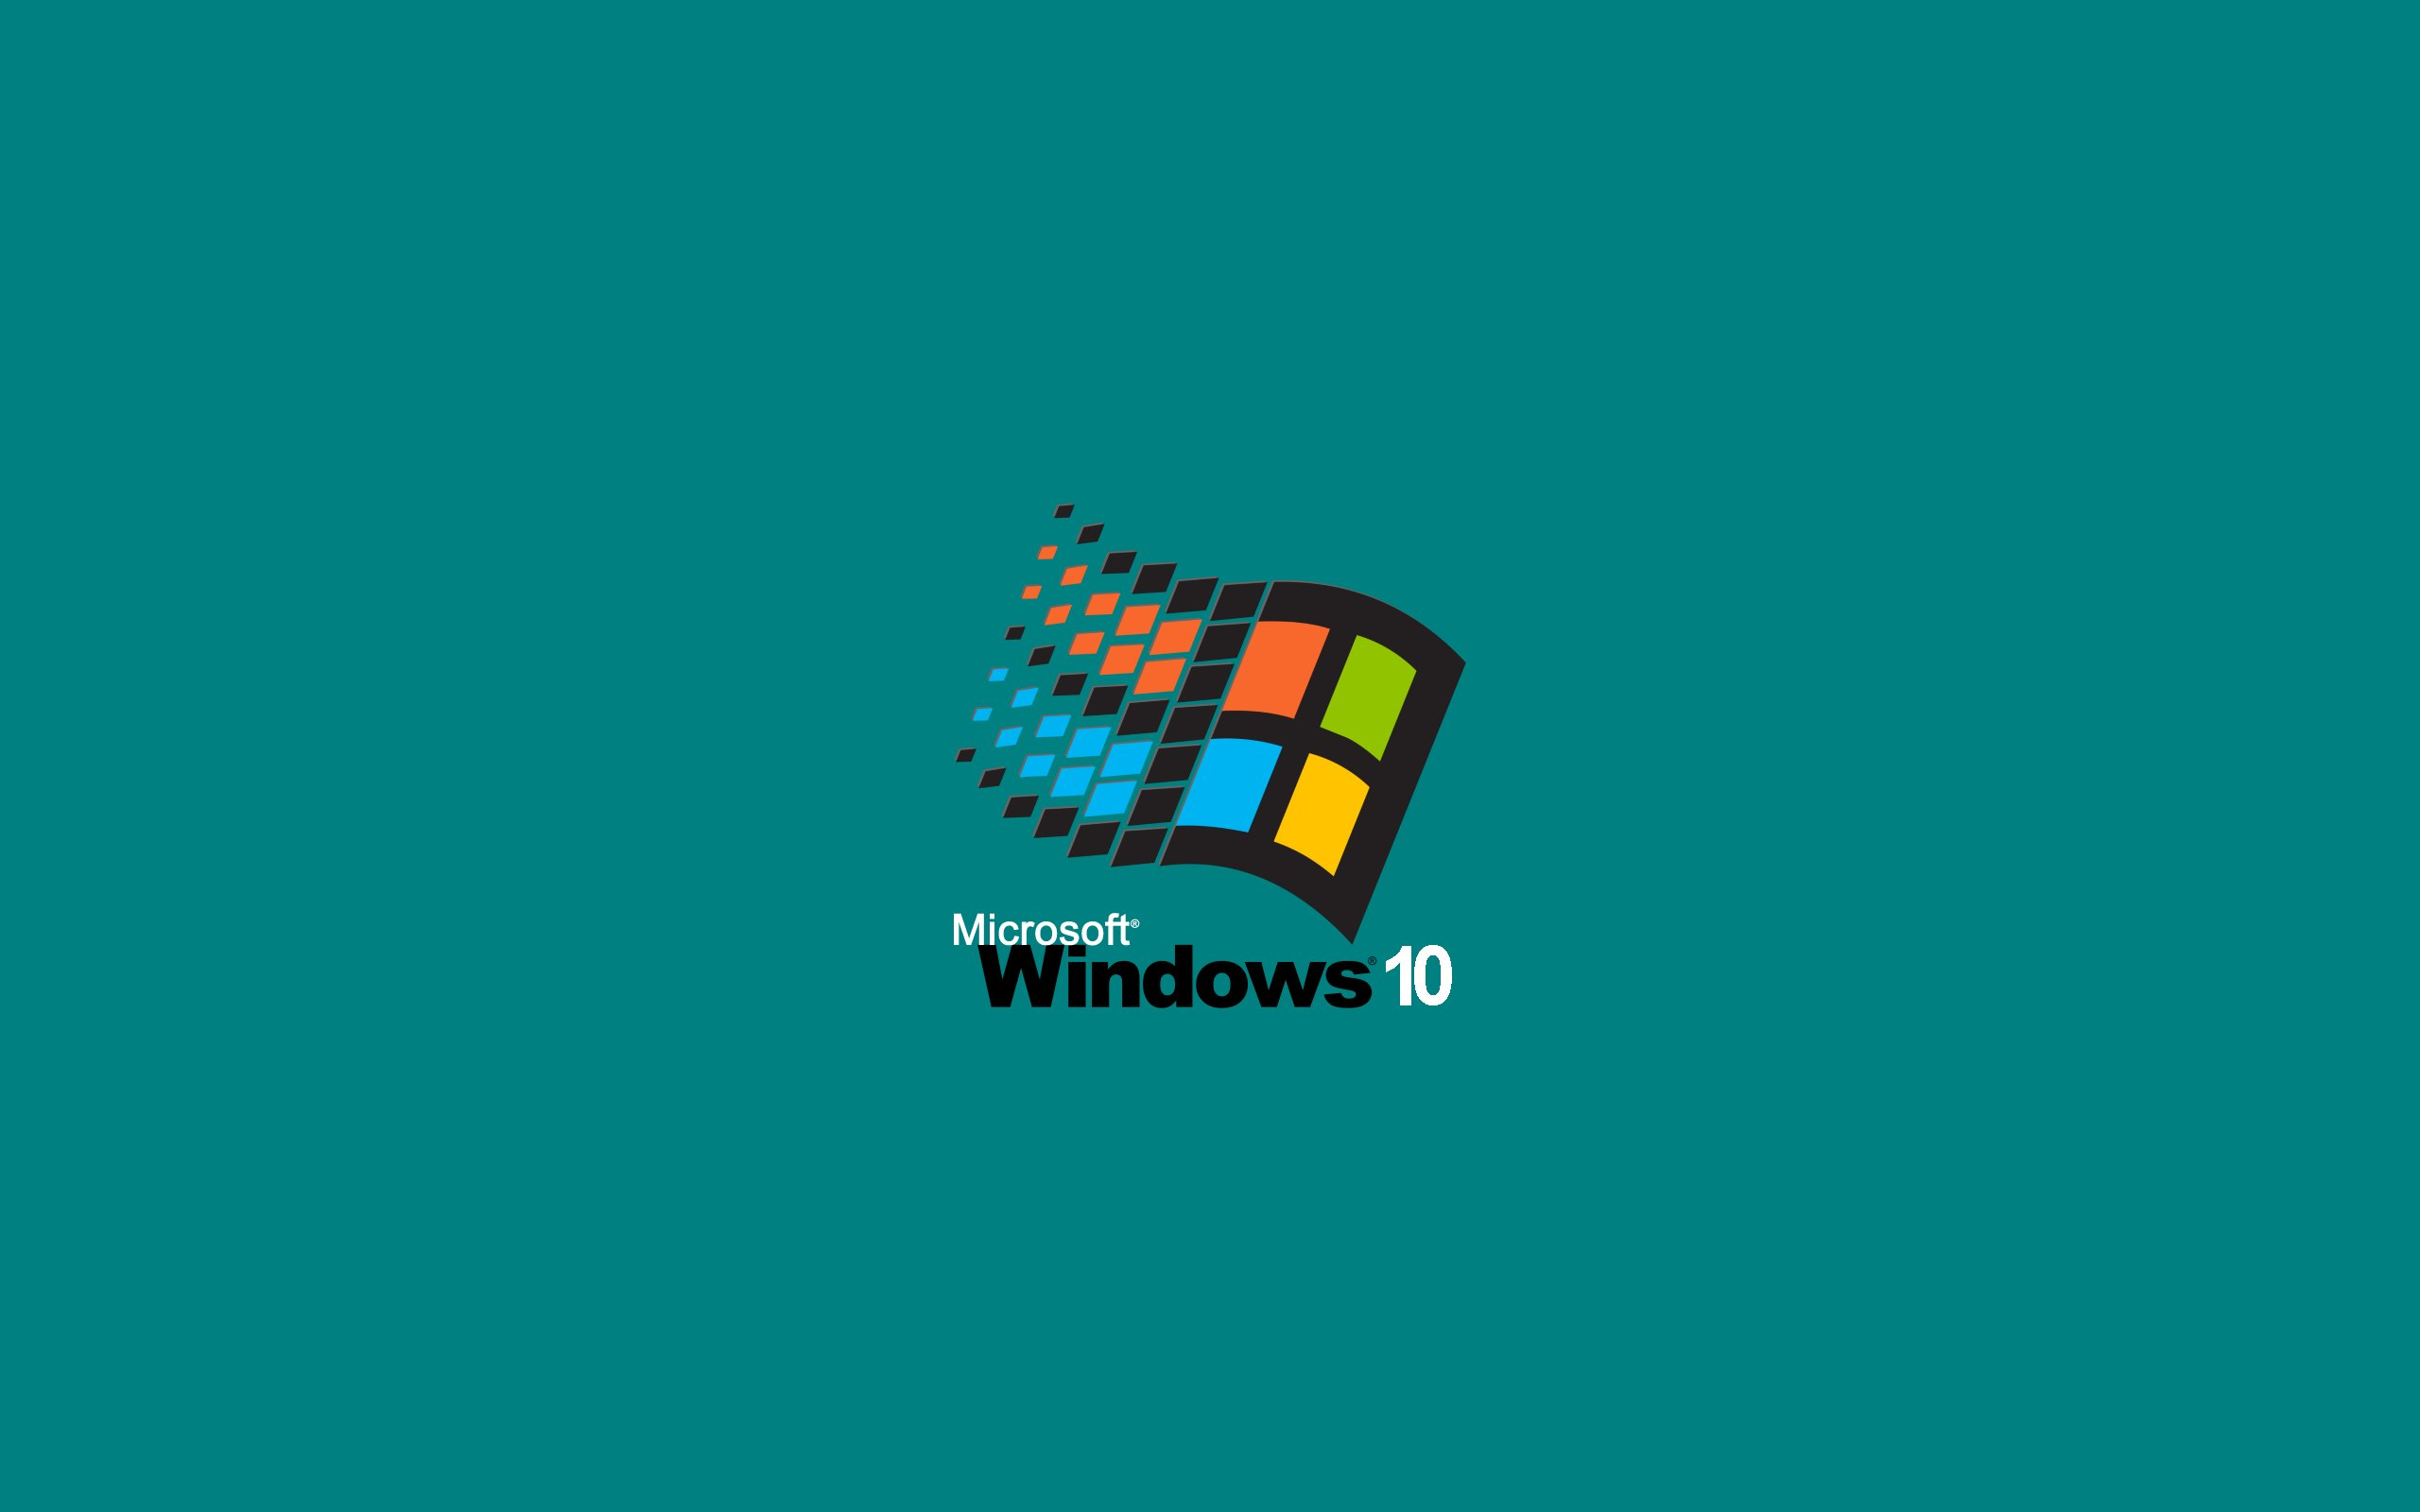 Windows Wallpapers Photos And Desktop Backgrounds Up To 8K 7680x4320 Resol